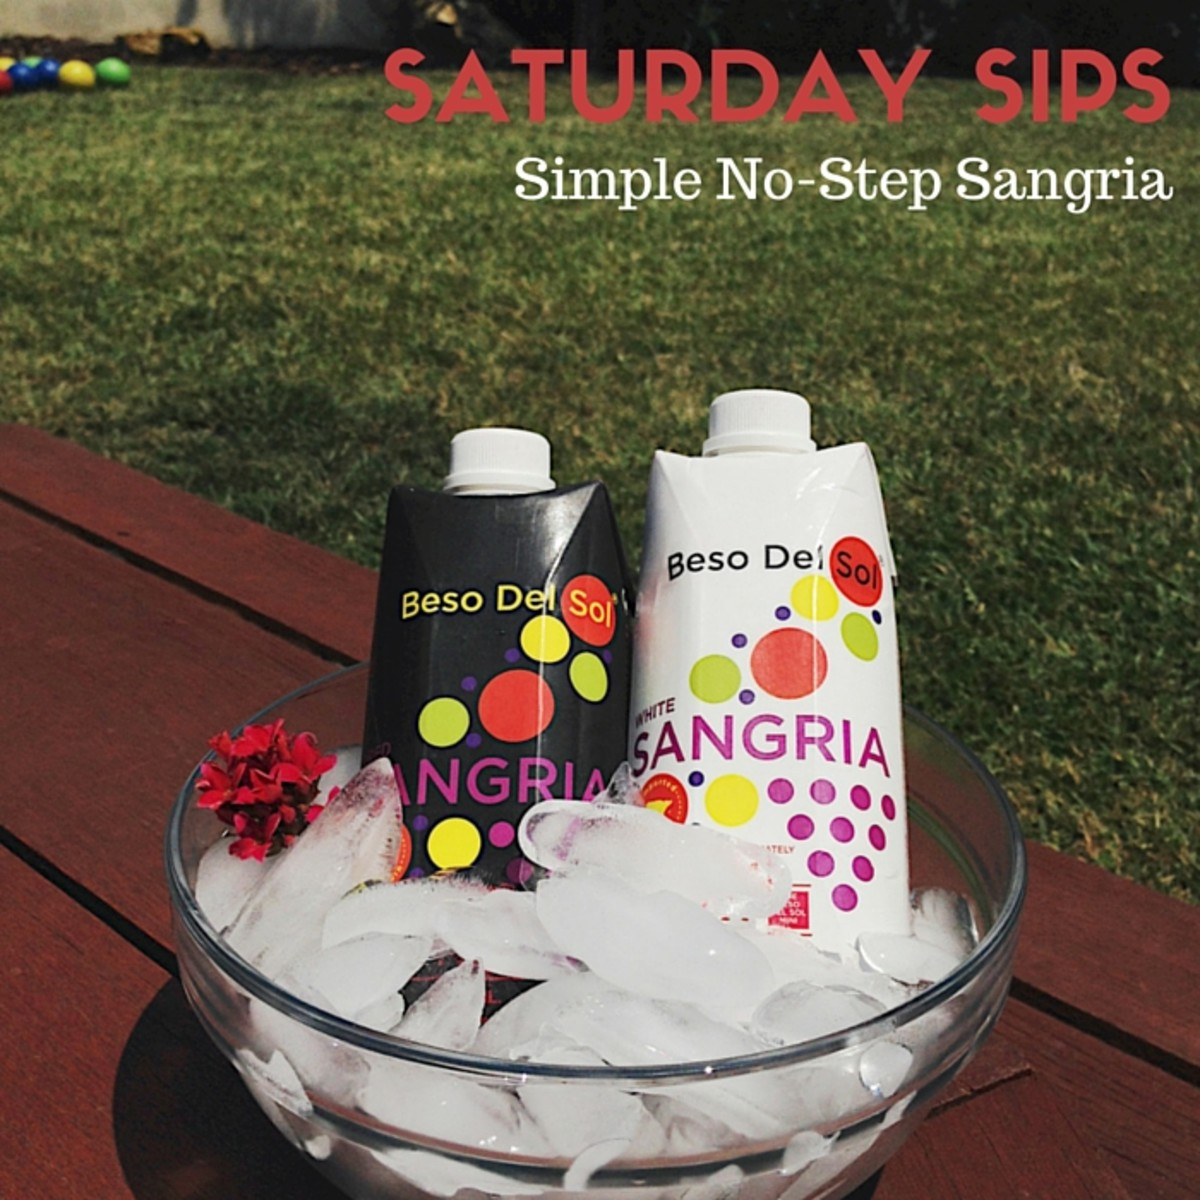 SATURDAY SIPS: Simple Sangria